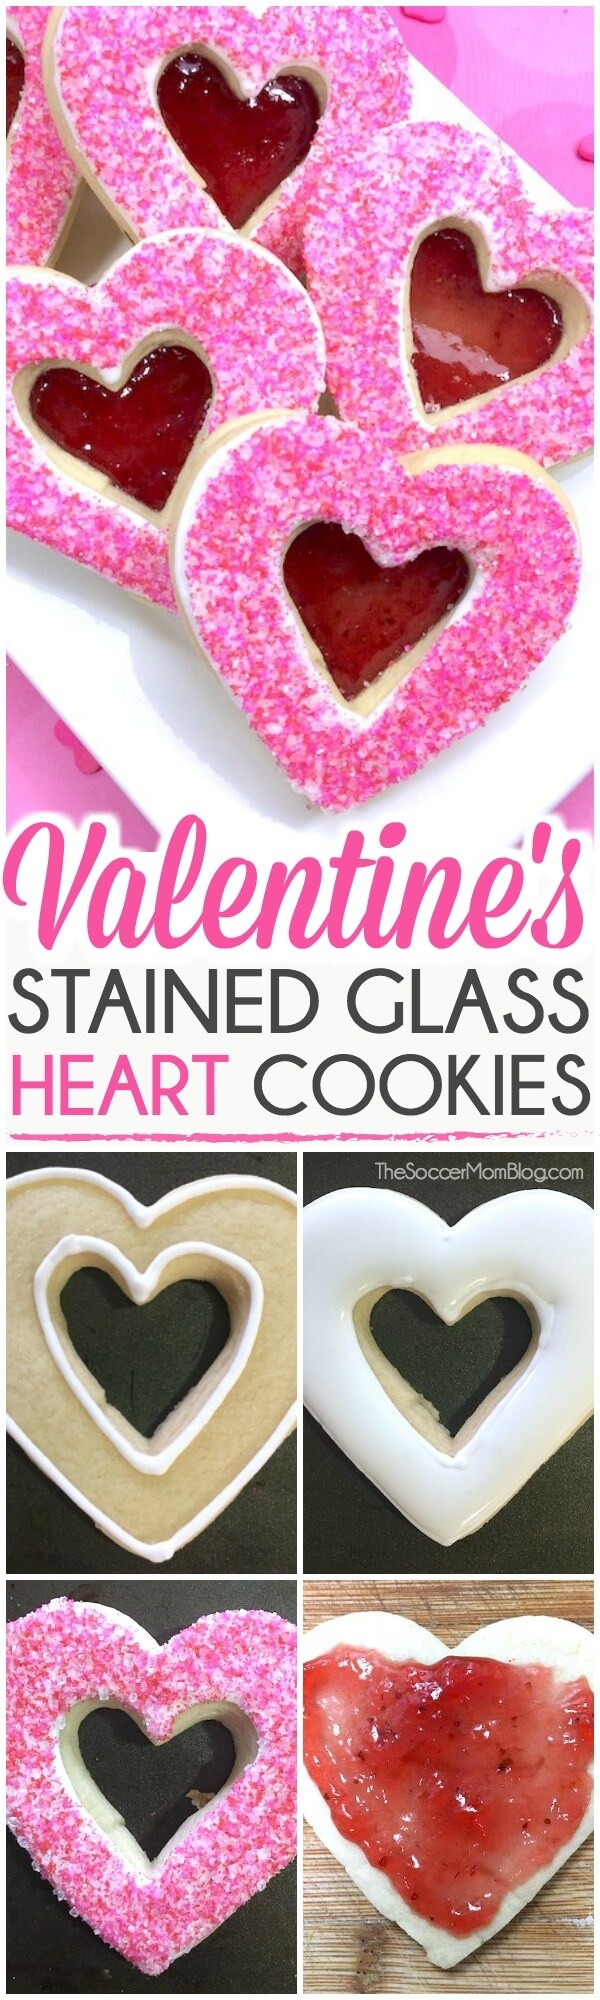 How to make heart cut-out sugar cookies for Valentine's Day